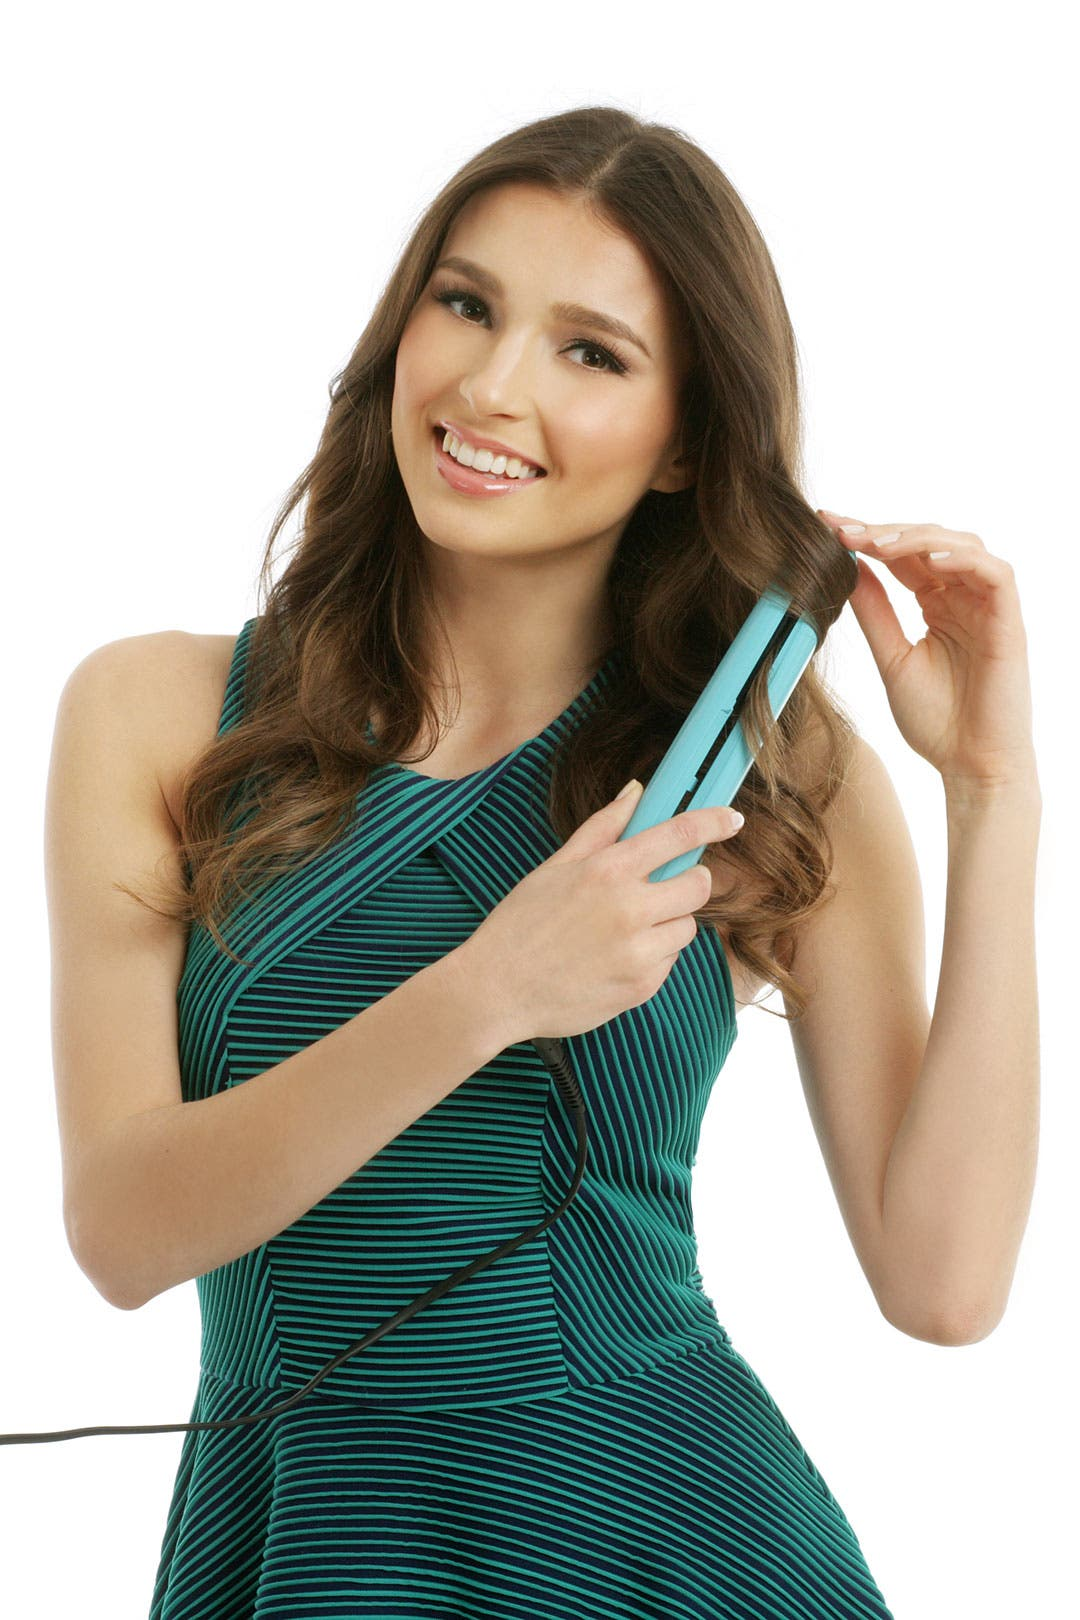 Mint Candy Styler by ghd Professional